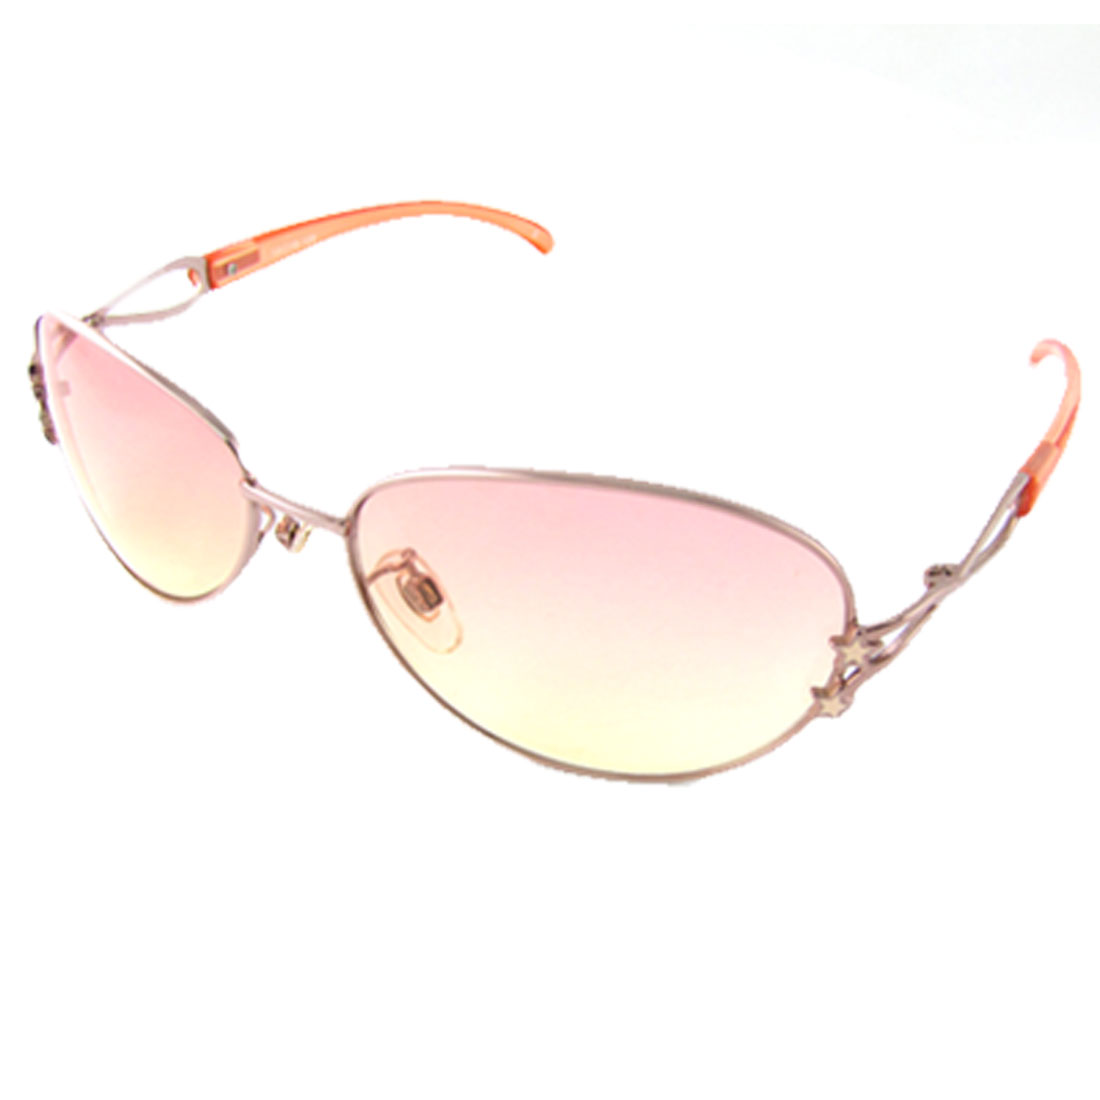 UV Protection Metal Full Rim Oval Lens Slim Arms Sunglasses for Ladies